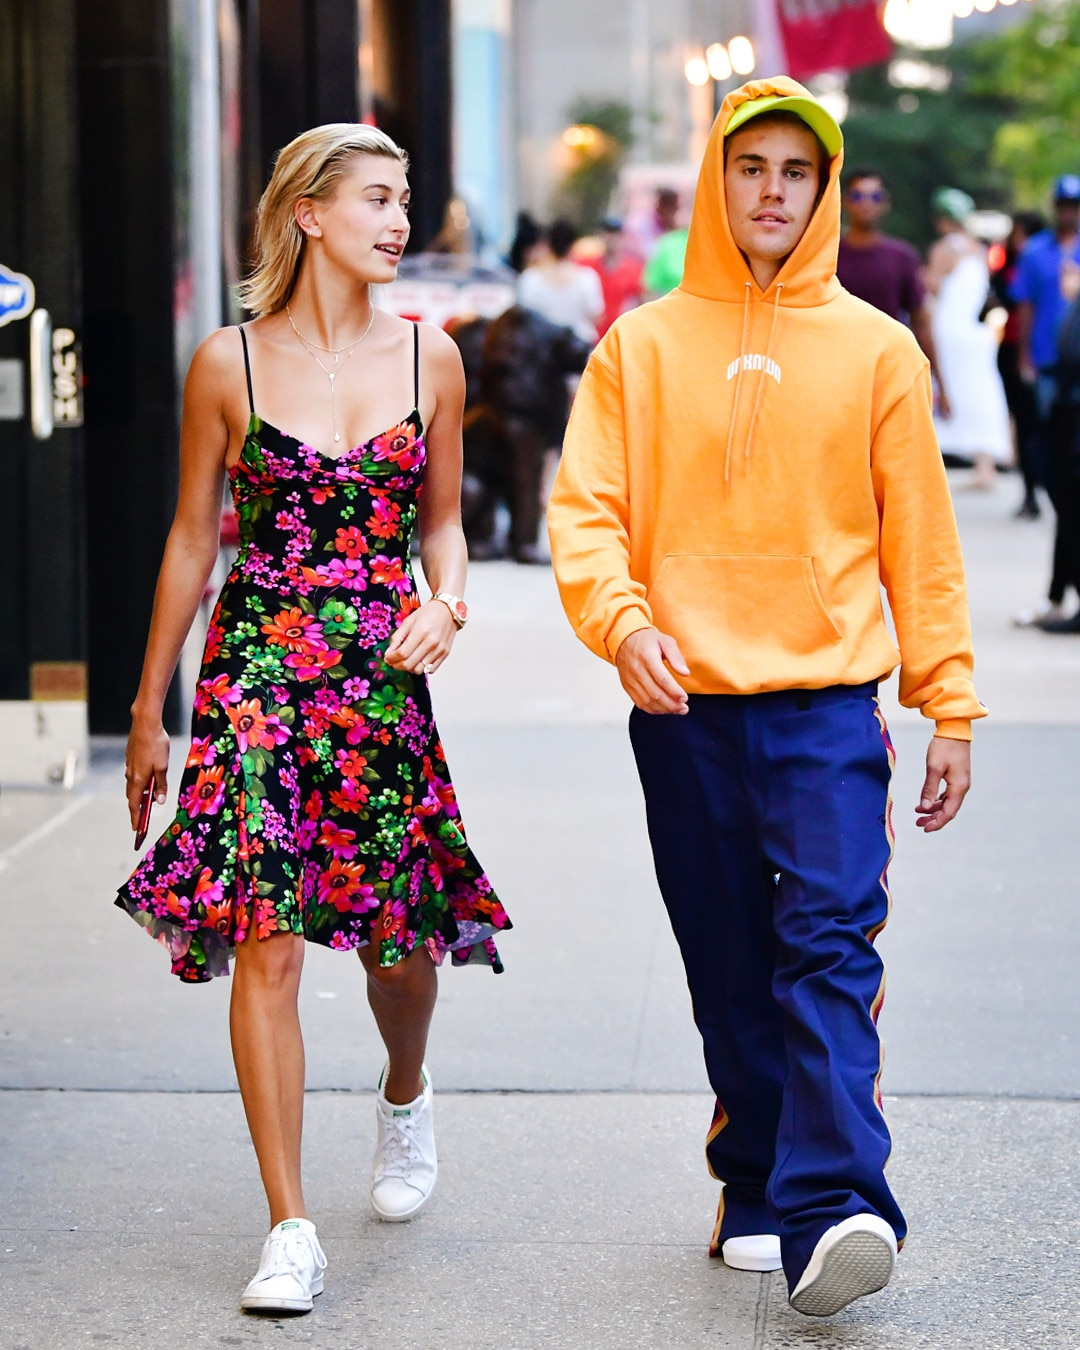 Justin Bieber Reveals Why He Was Crying With Hailey Baldwin